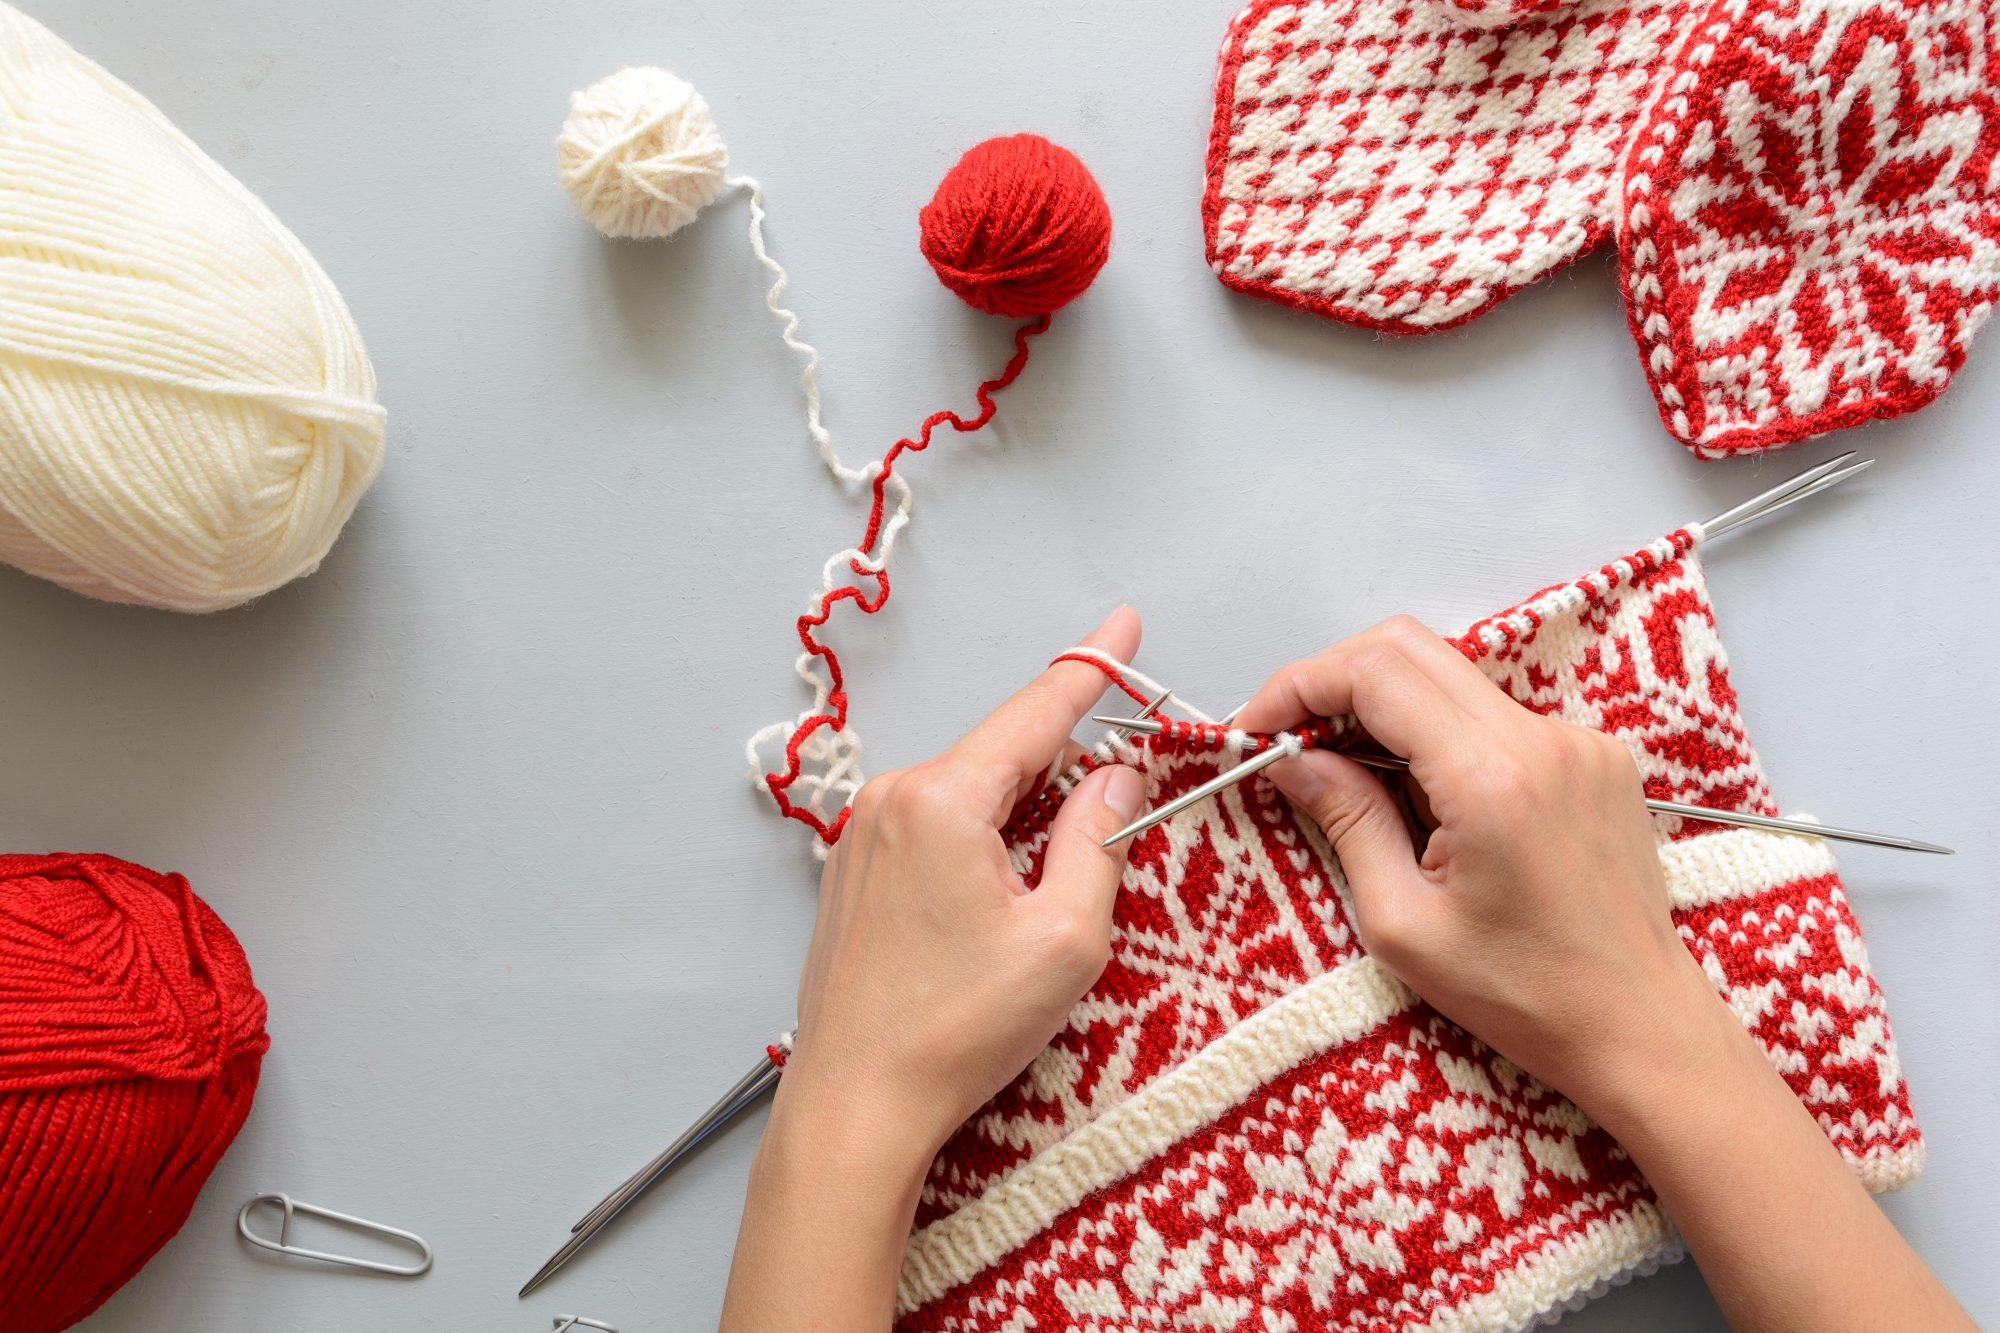 Try Fair Isle Knitting—It's An Easy Method Using Two Colors of Yarn